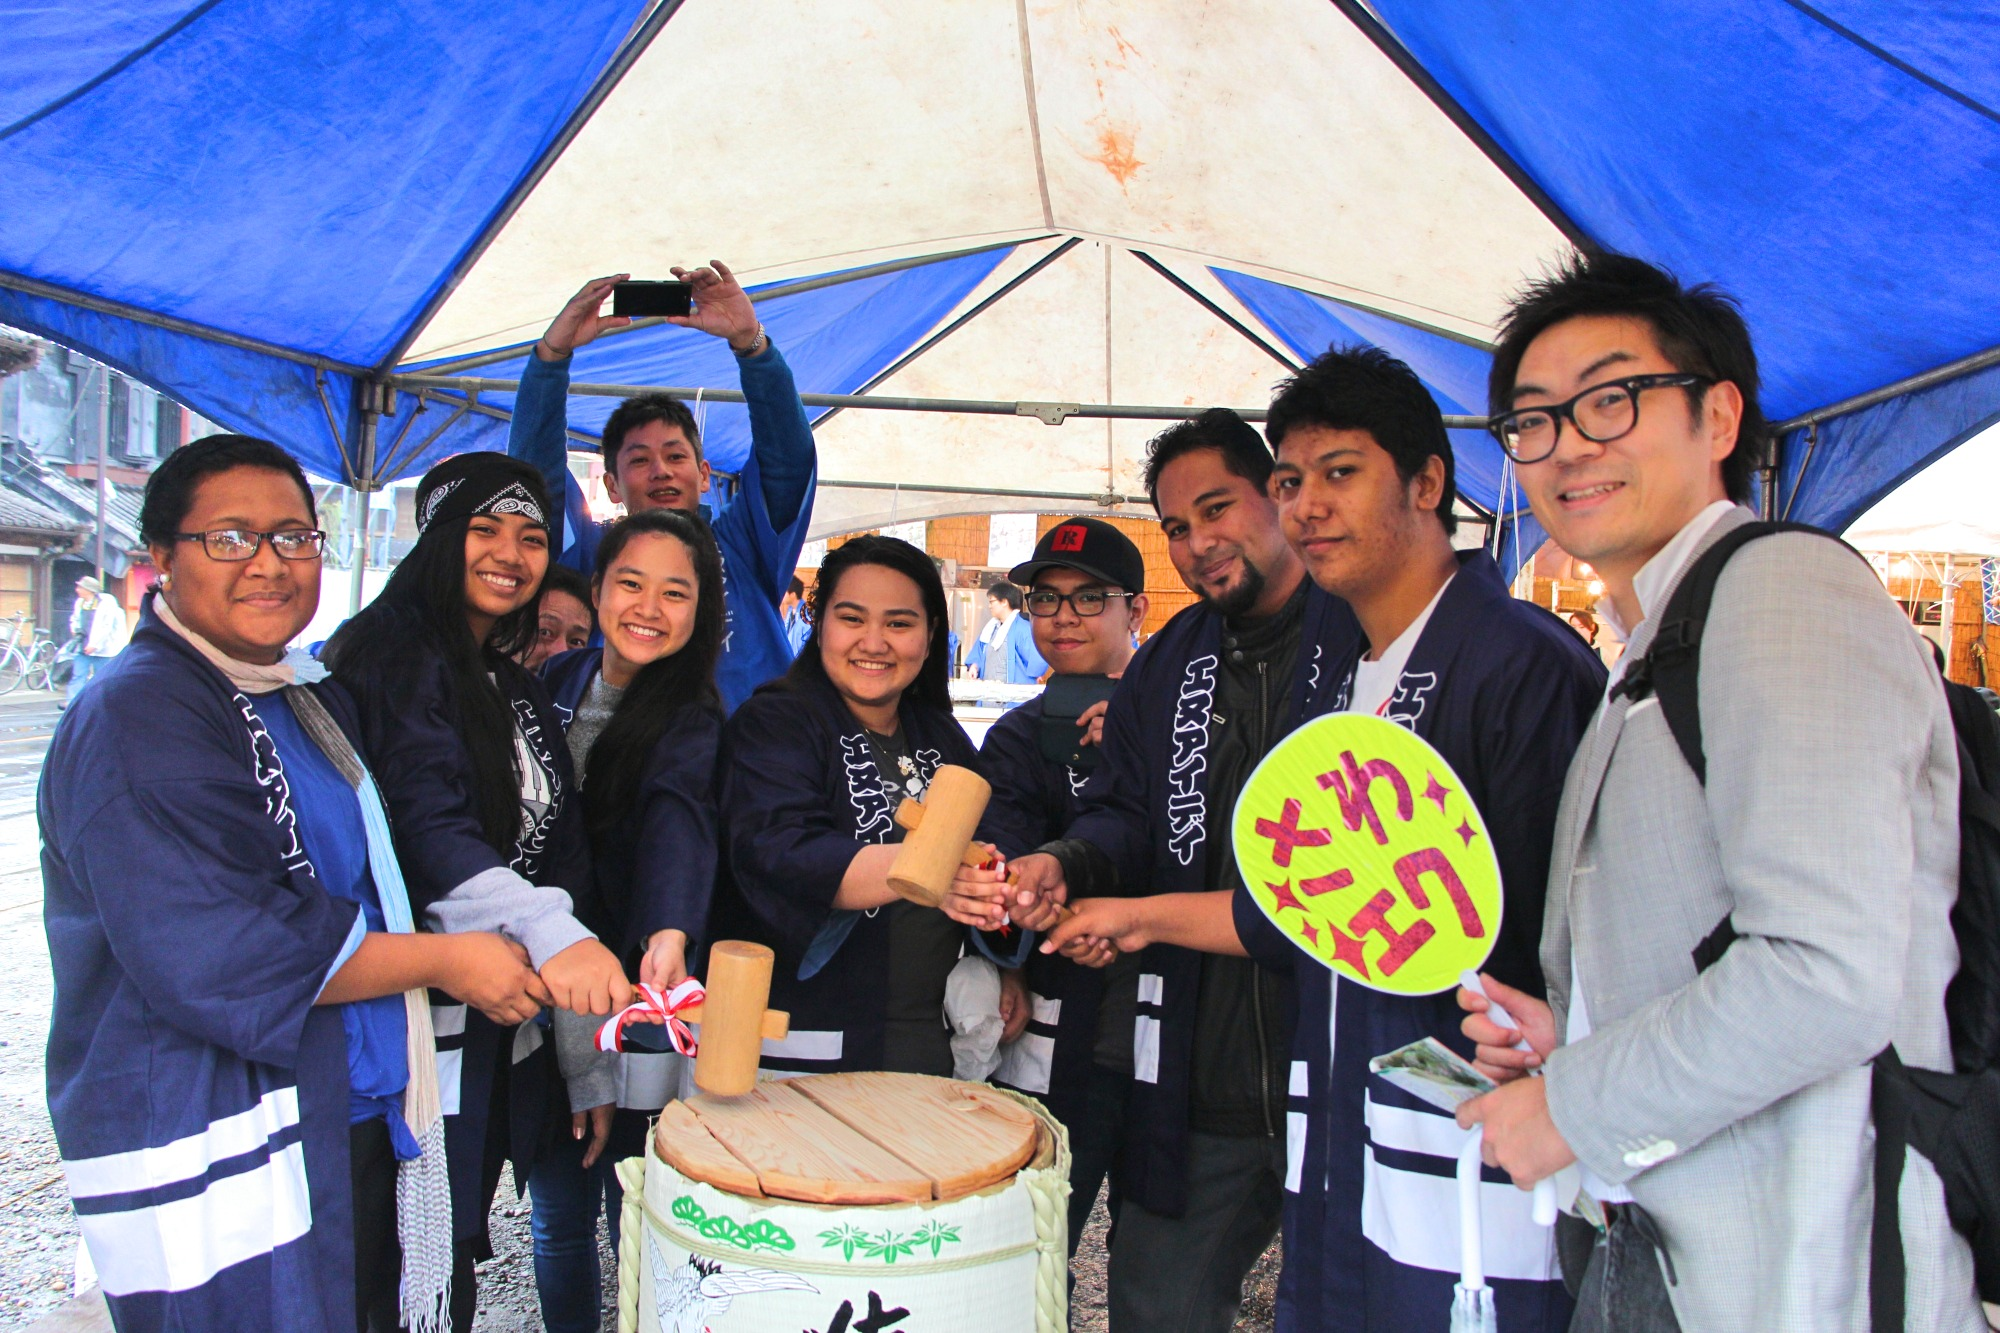 Xavier Exchange Students Participate in Sawara Festival